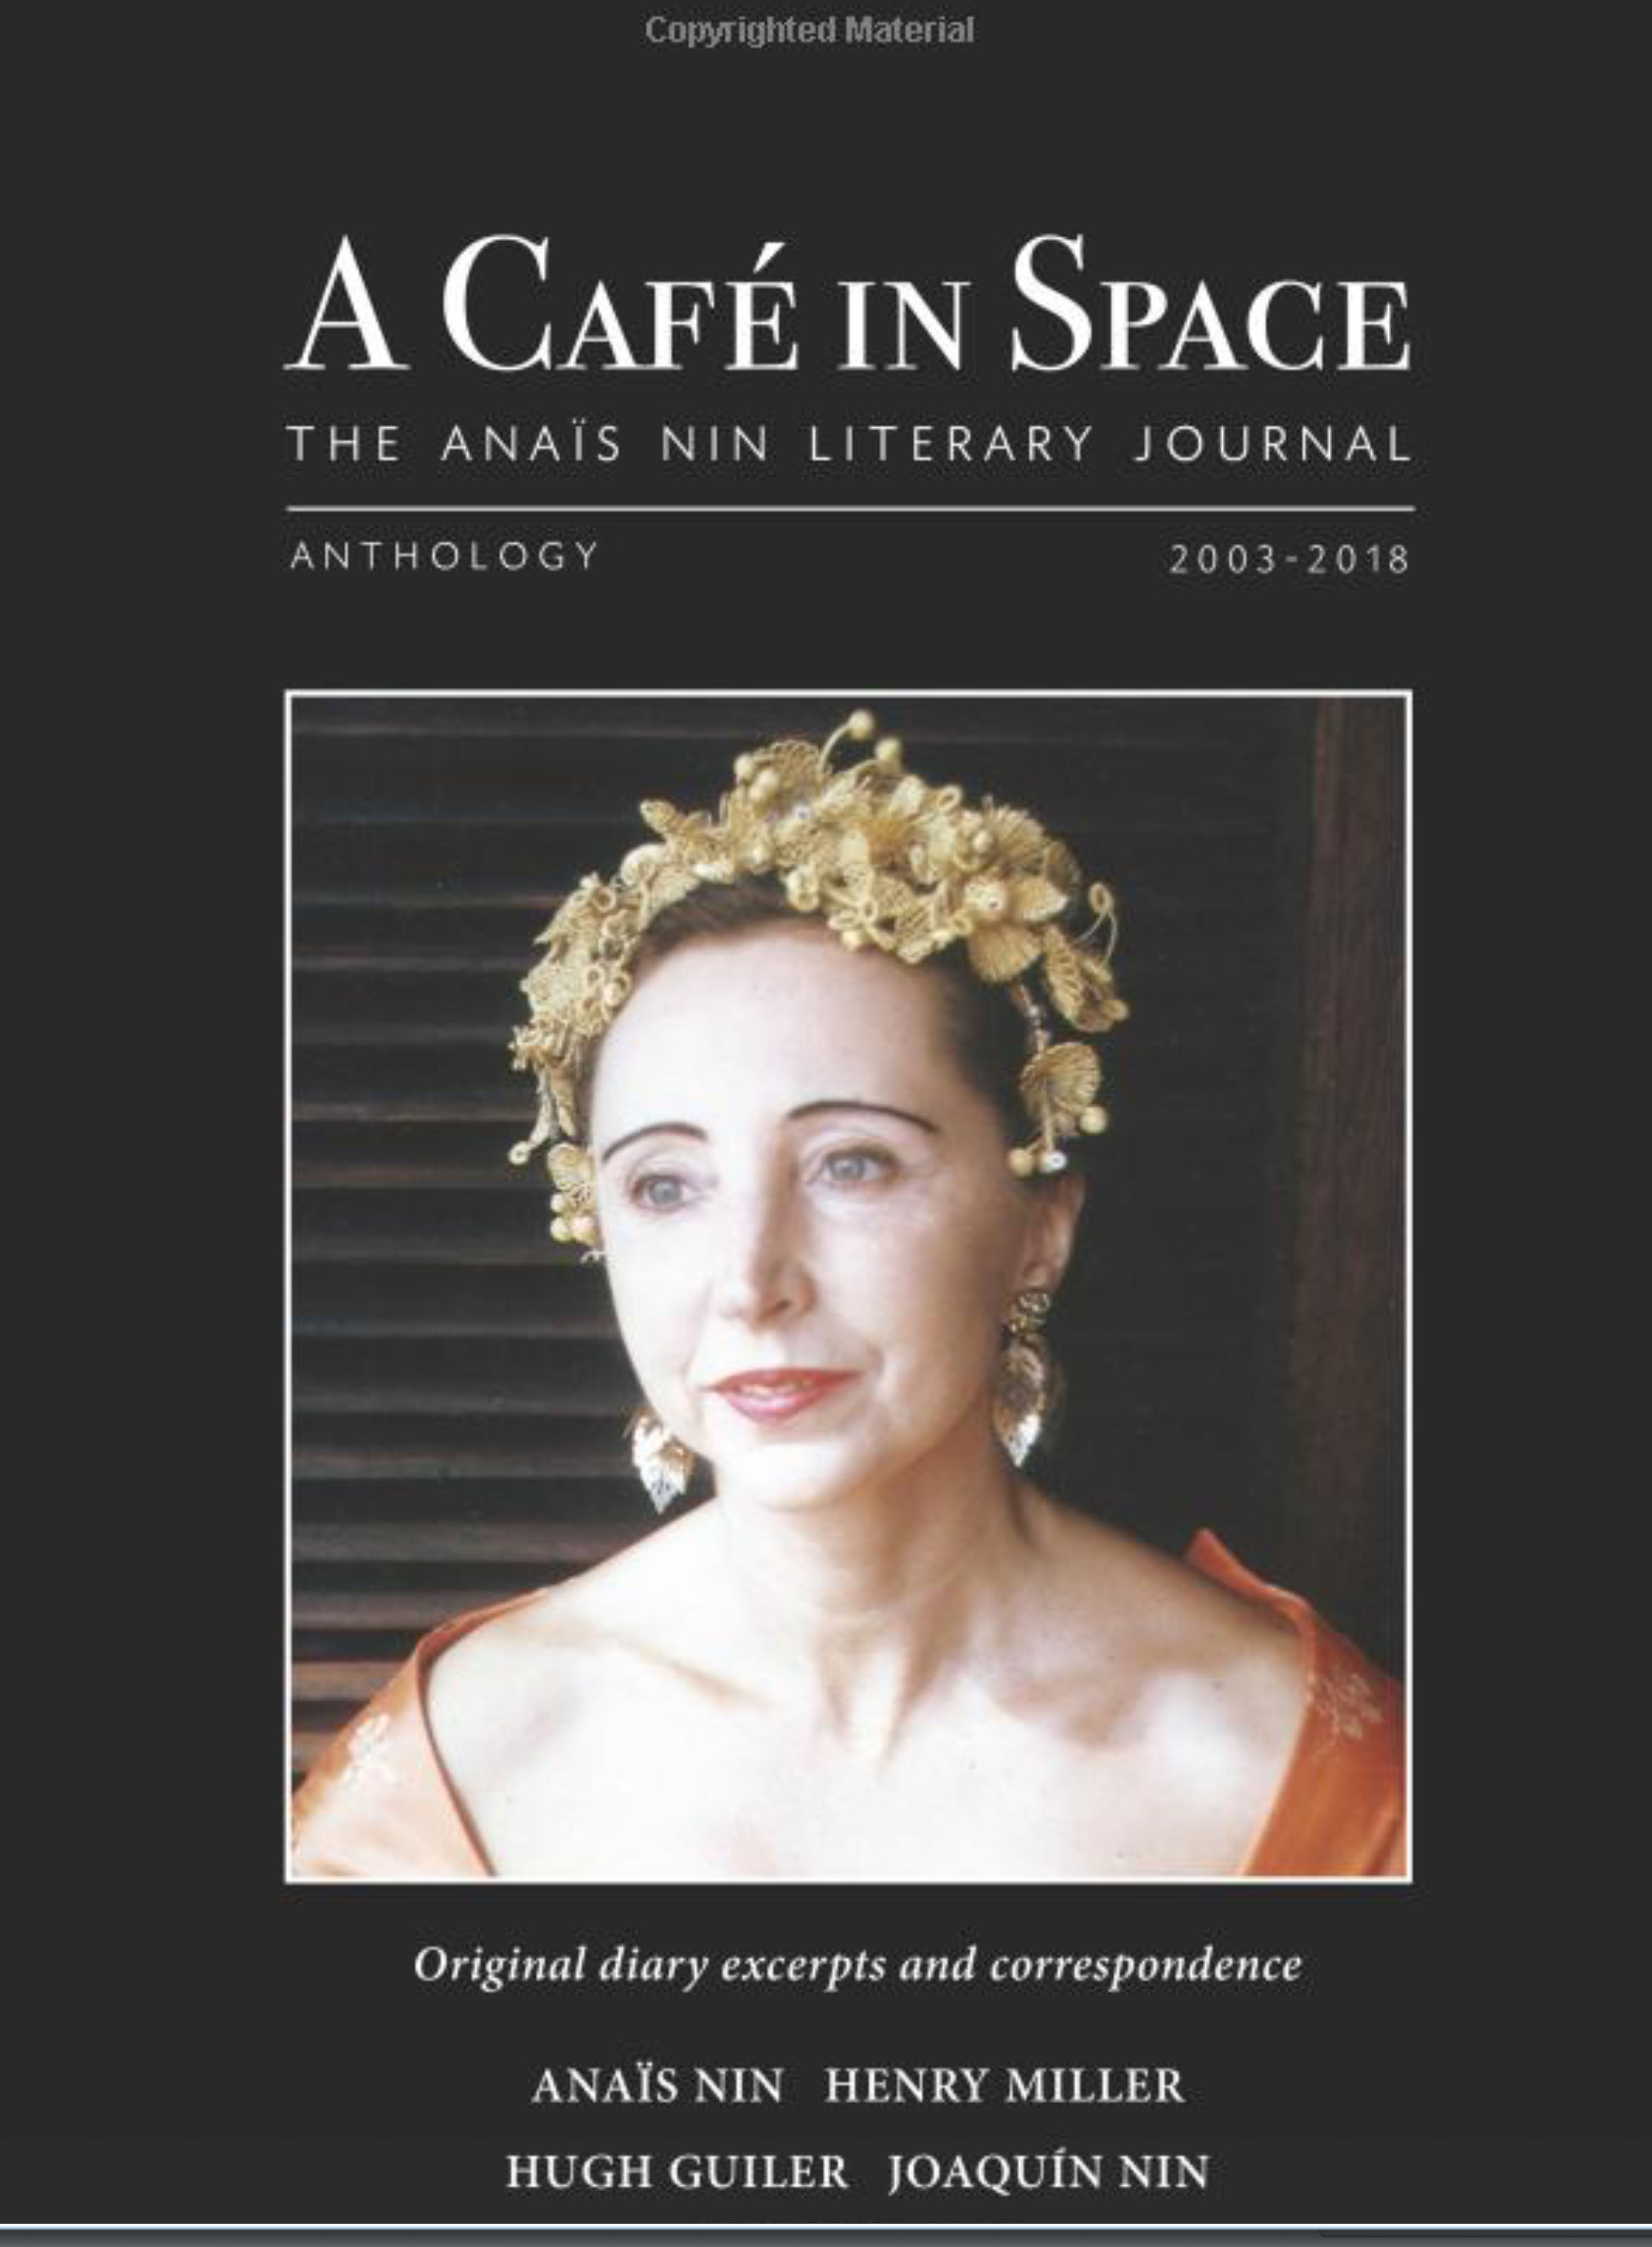 cafe in space cover.jpg